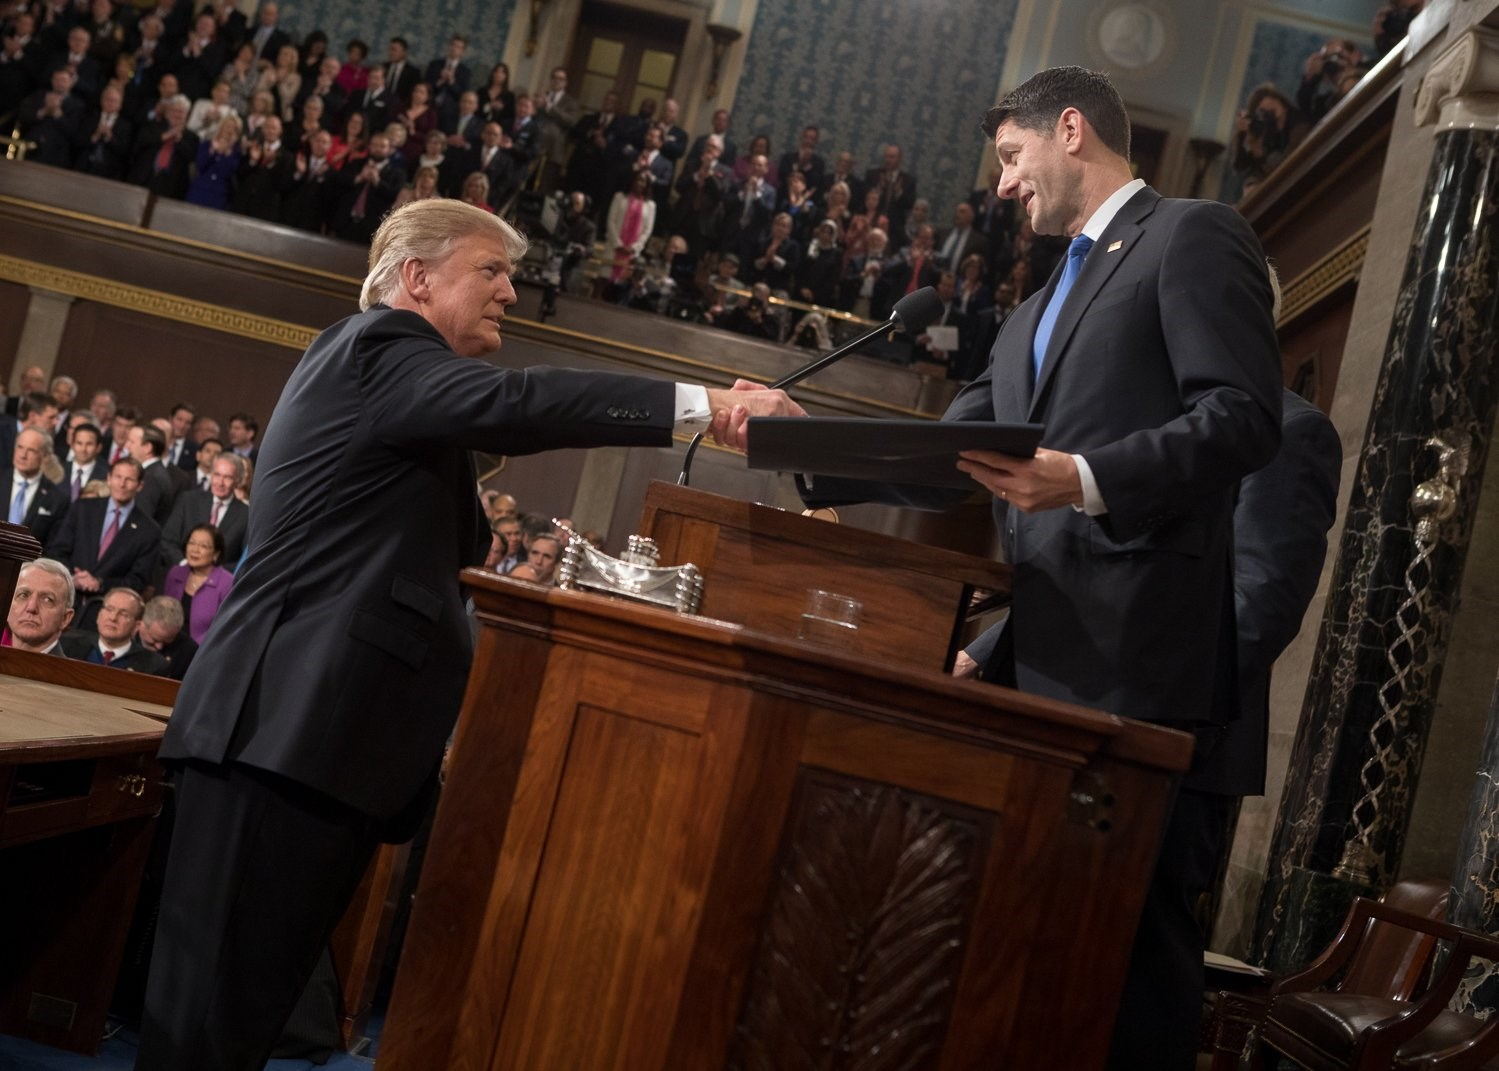 "By Office of the Speaker (https://twitter.com/SpeakerRyan) [Public domain], <a href=""https://commons.wikimedia.org/wiki/File%3ATrump_shaking_hands_with_Paul_Ryan.jpg"">via Wikimedia Commons</a>"